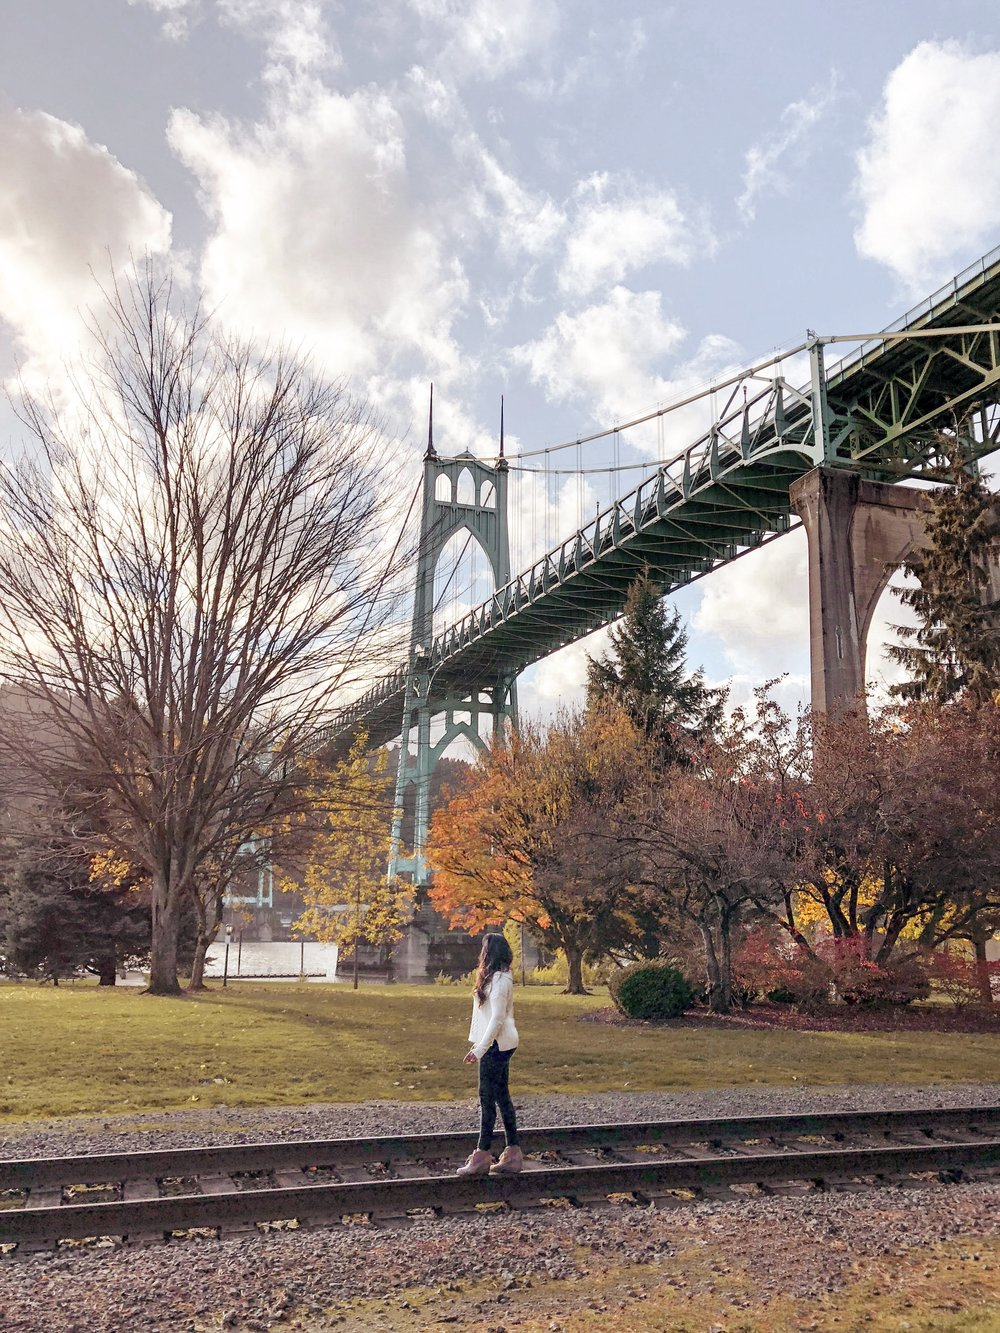 St Johns bridge, cathedral park, portland, oregon